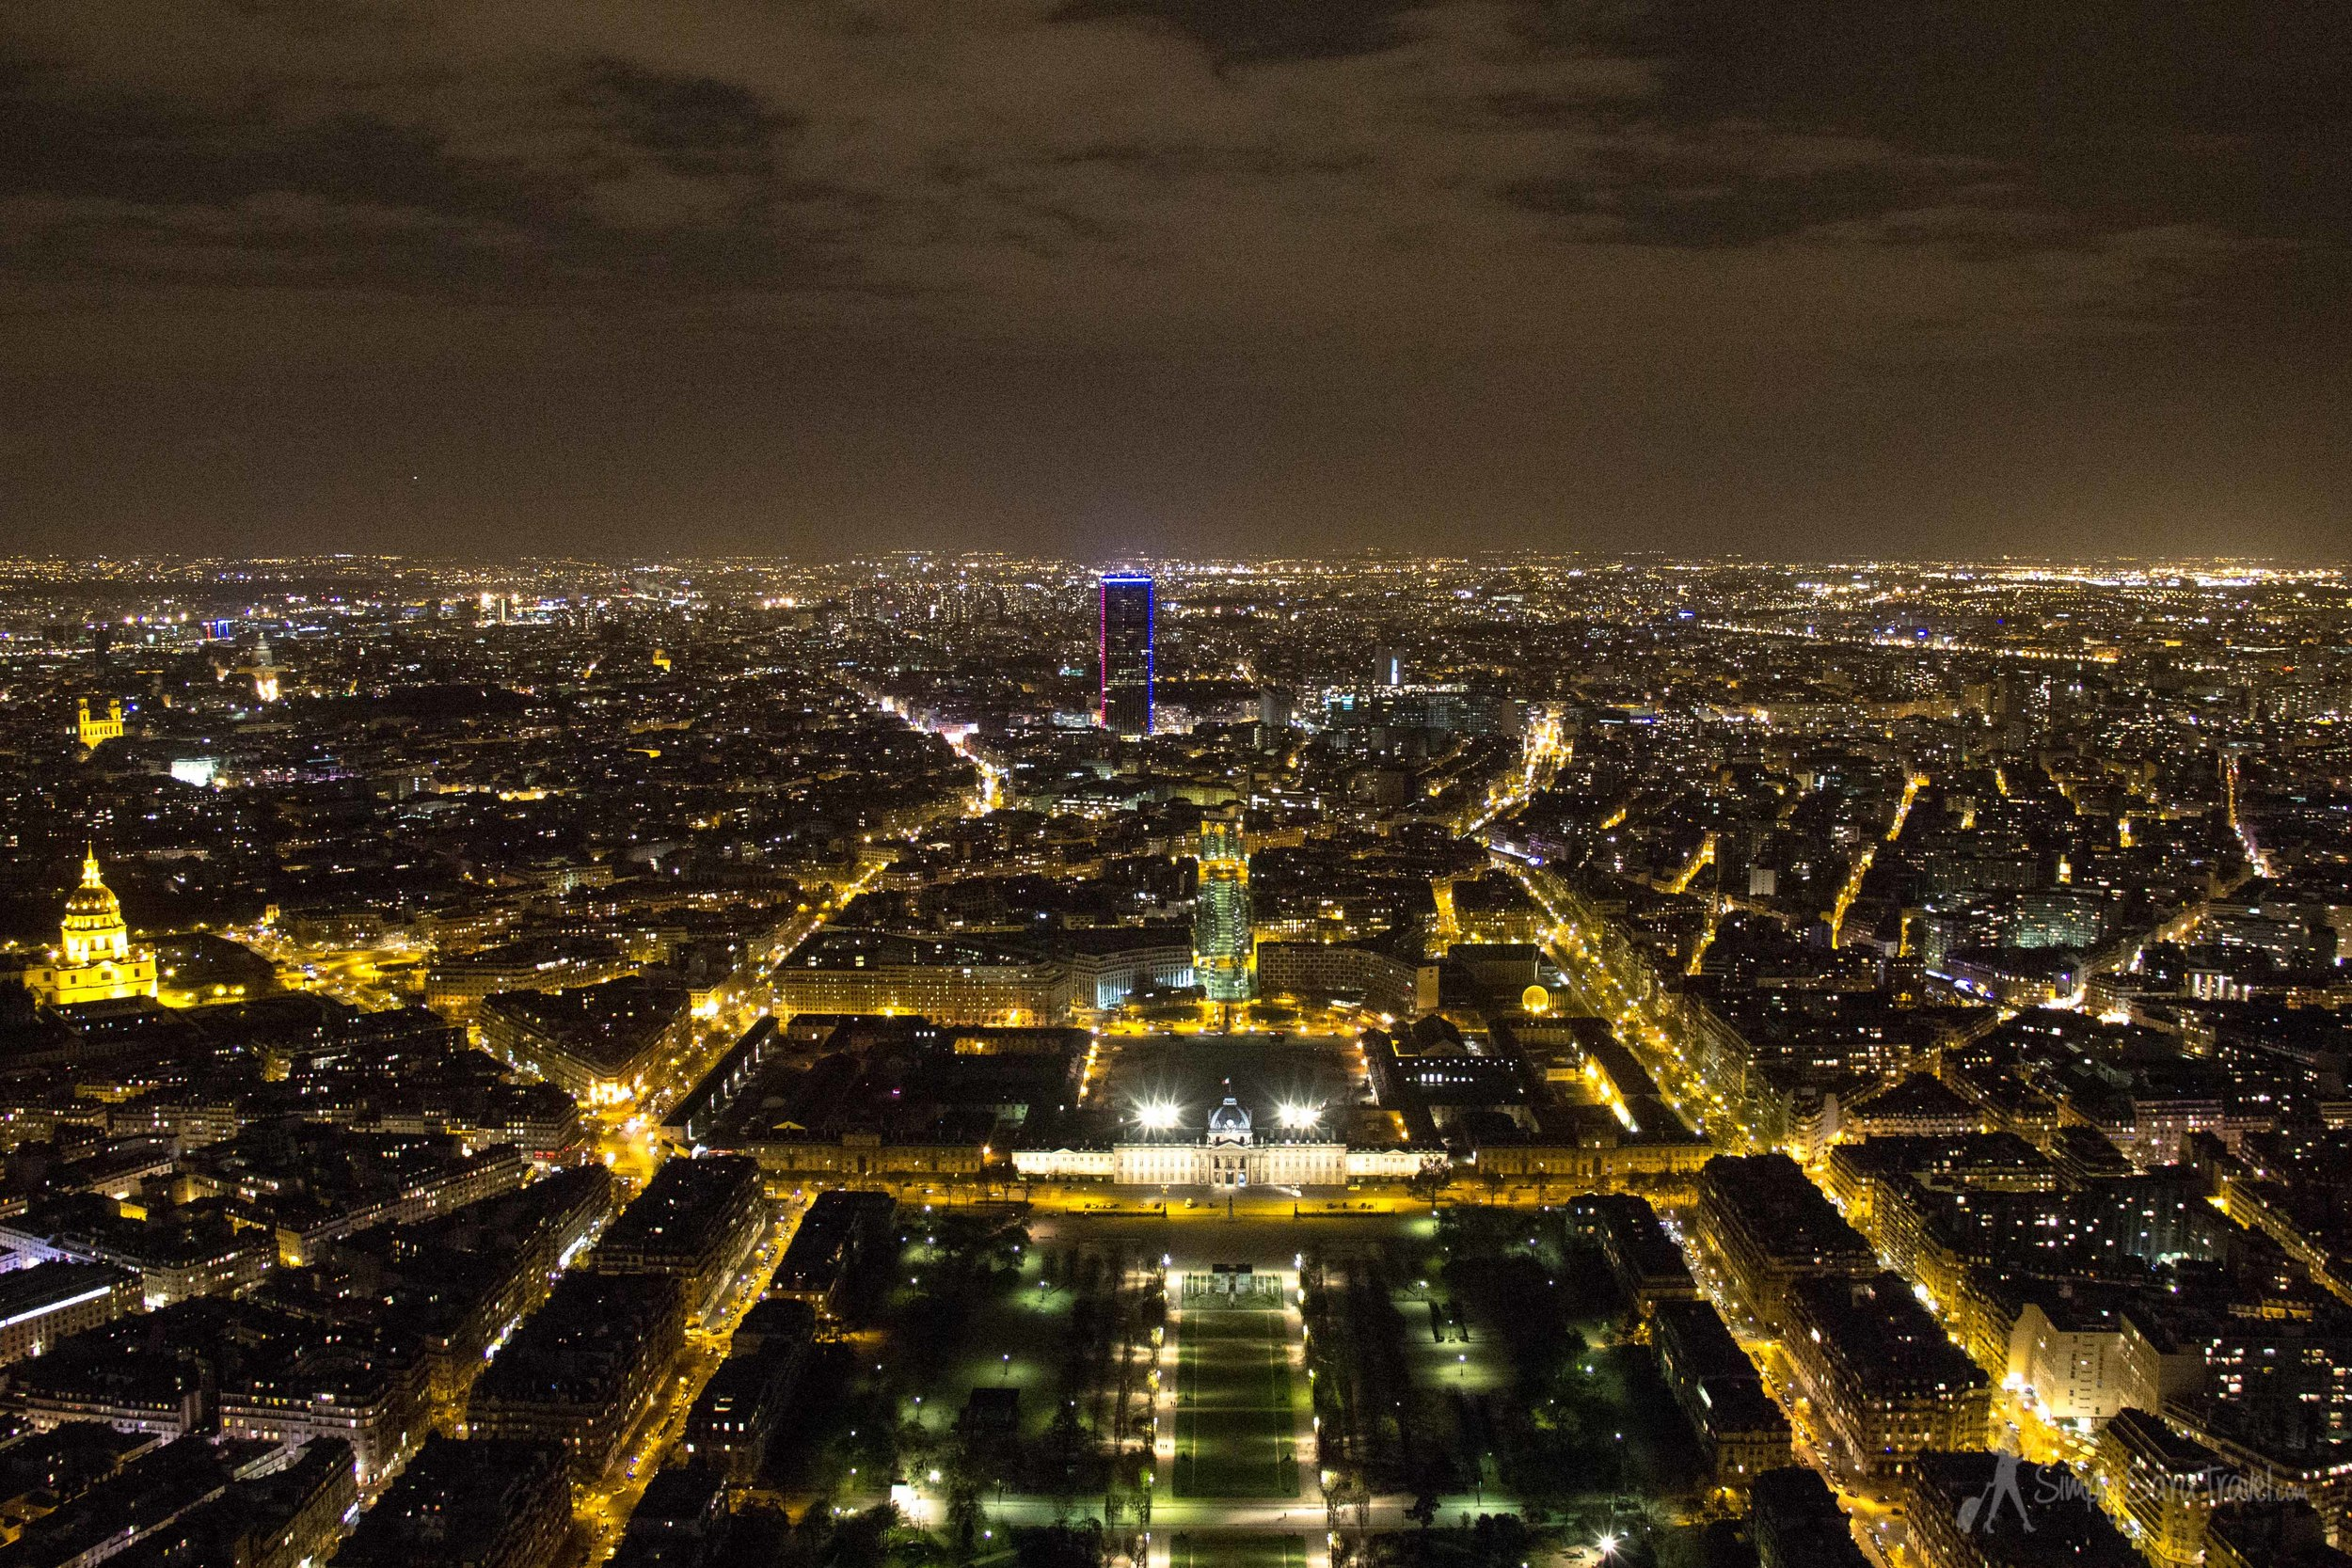 Another bonus - apparently the Eiffel Tower is almost completely empty on a winter evening. Dress for some wind and enjoy the (almost) private view!